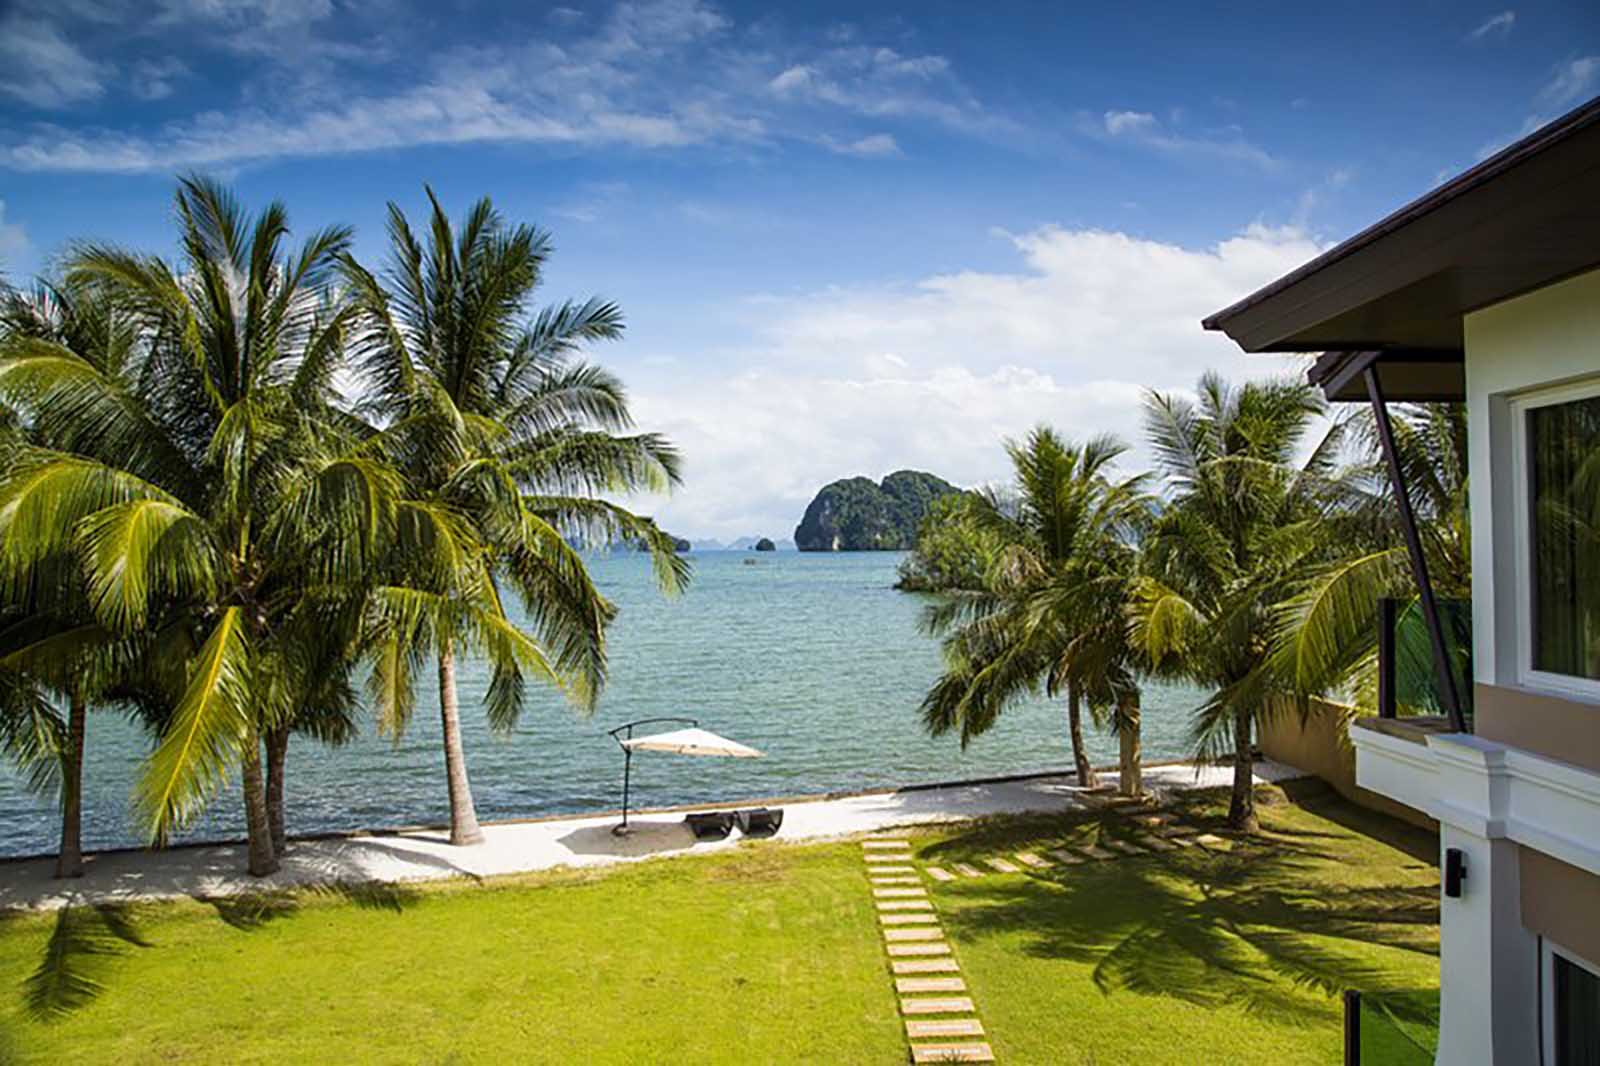 for holiday rental - Private Oceanfront Villa in a Stunning Location - Ao Tha Lane, Krabi